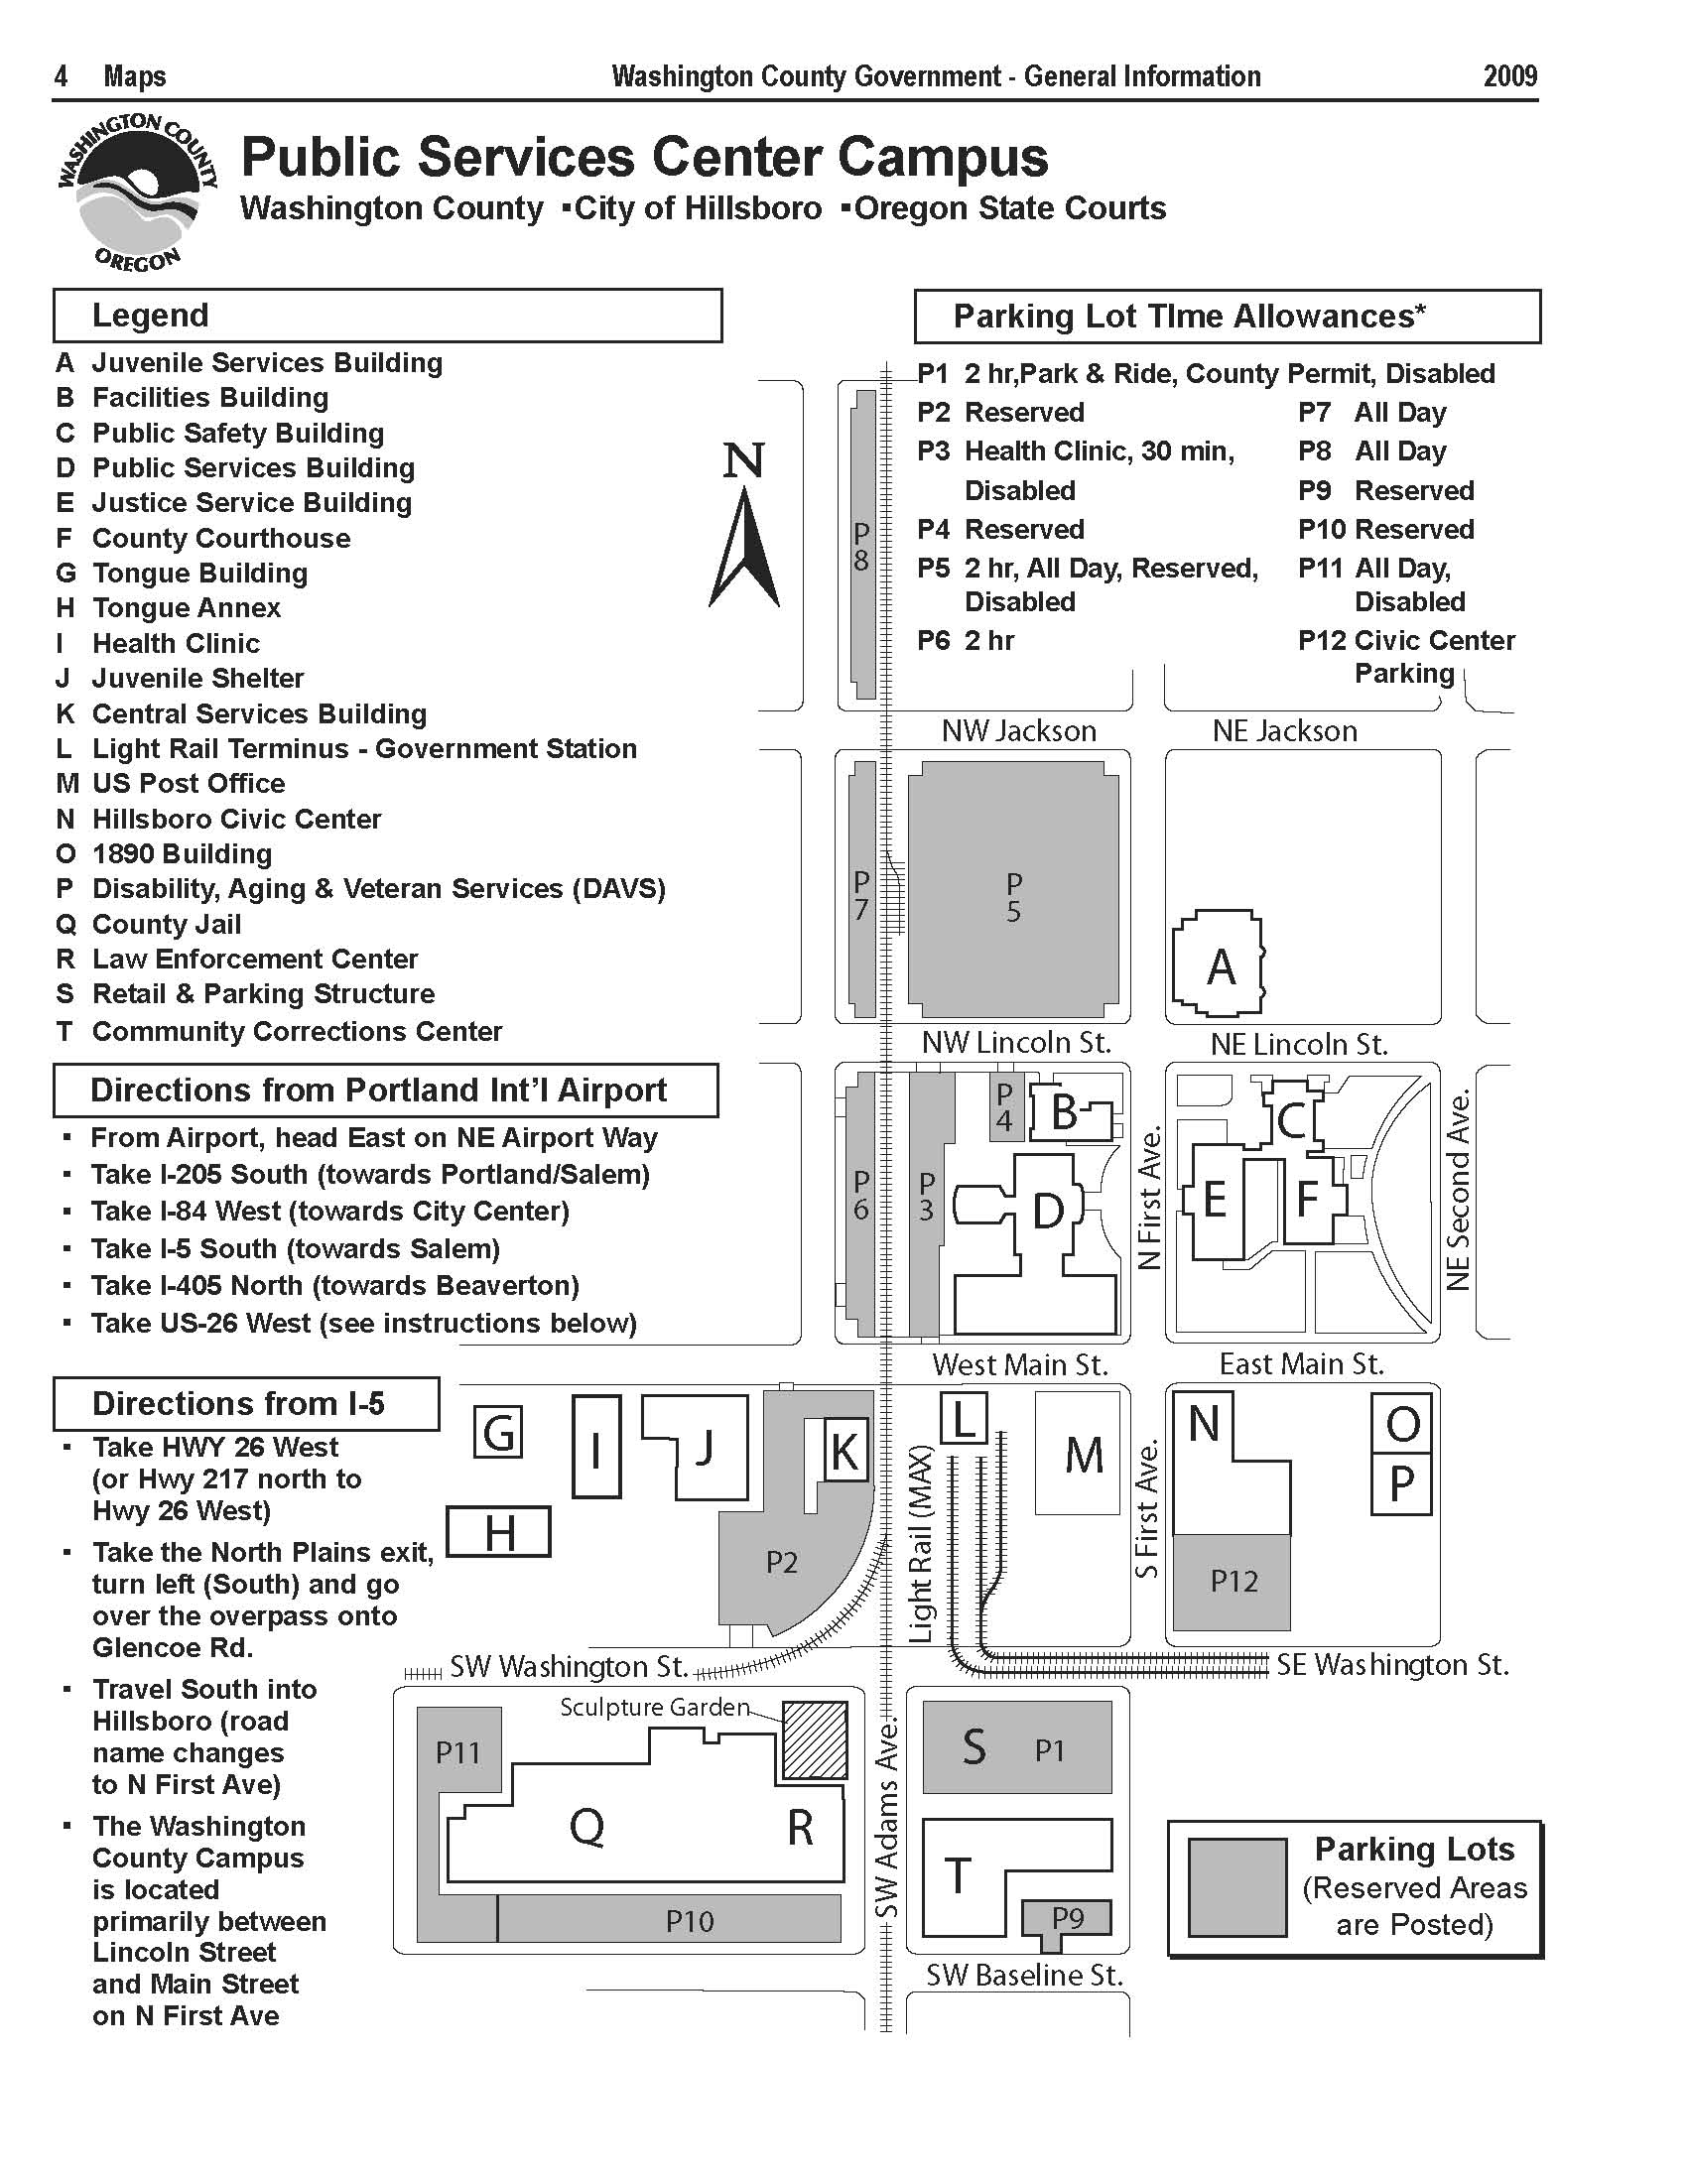 Washington County Campus Map, downtown Hillsboro, Oregon